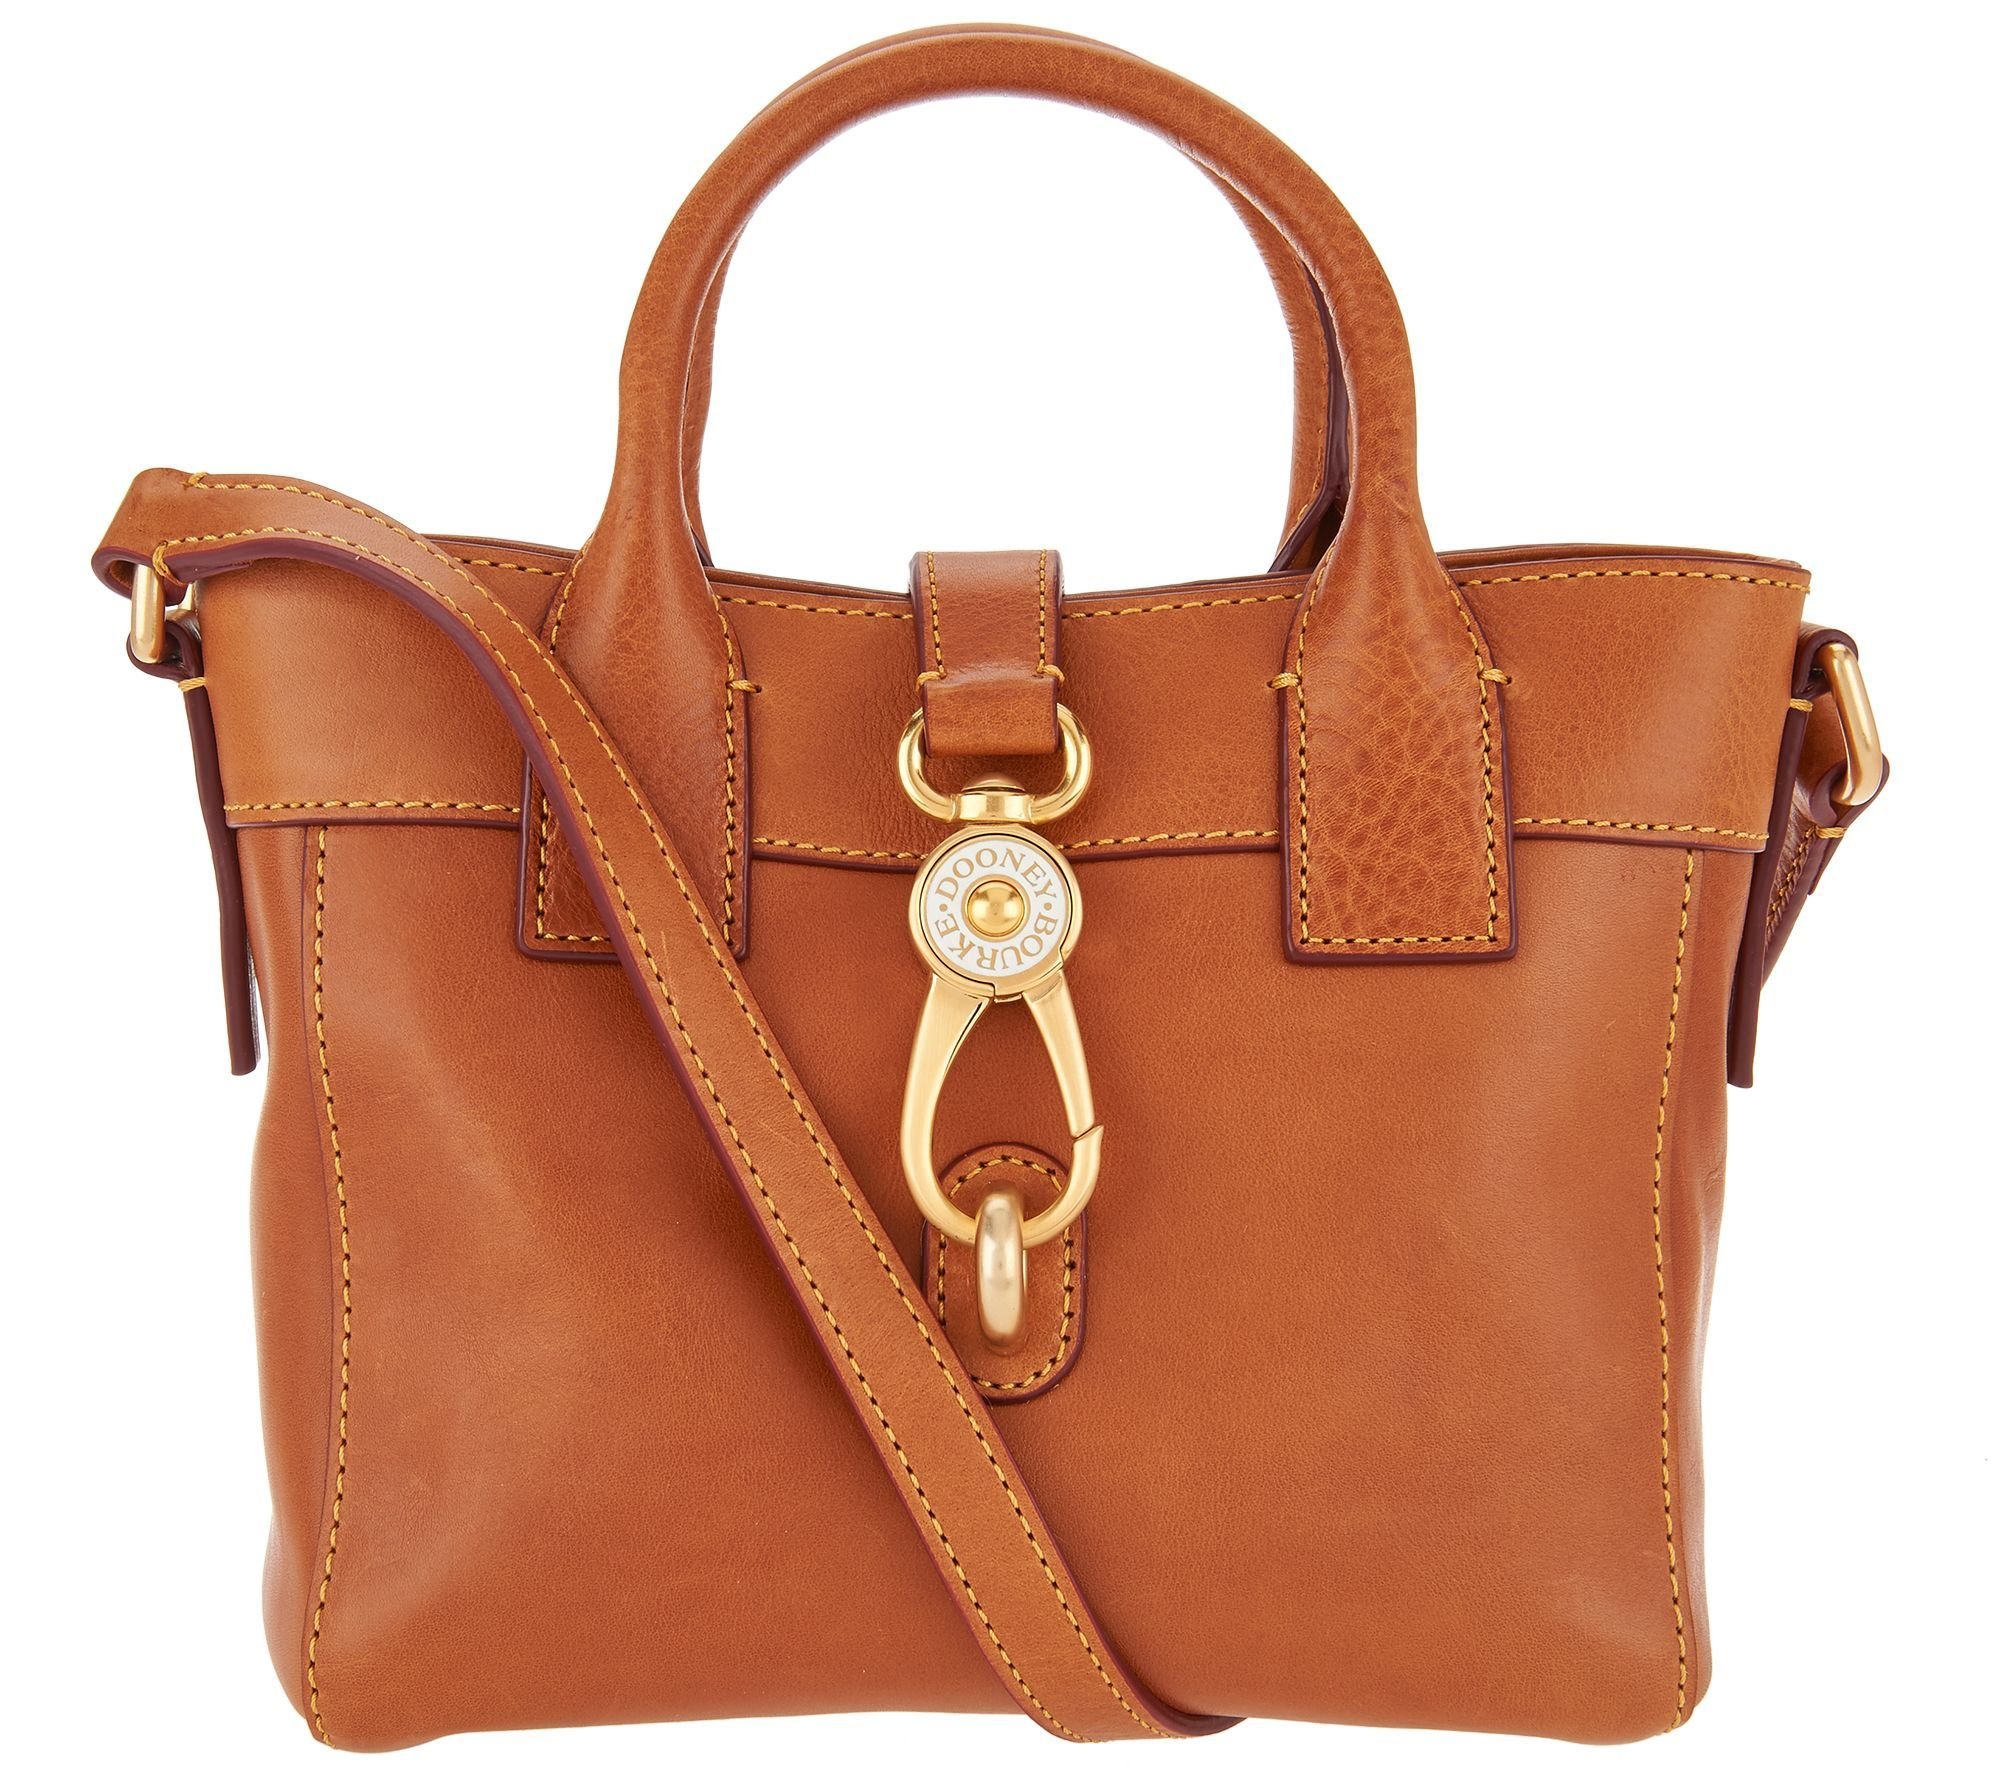 Dooney Bourke Florentine Leather Small Tote Handbag Amelia Page 1 Qvc